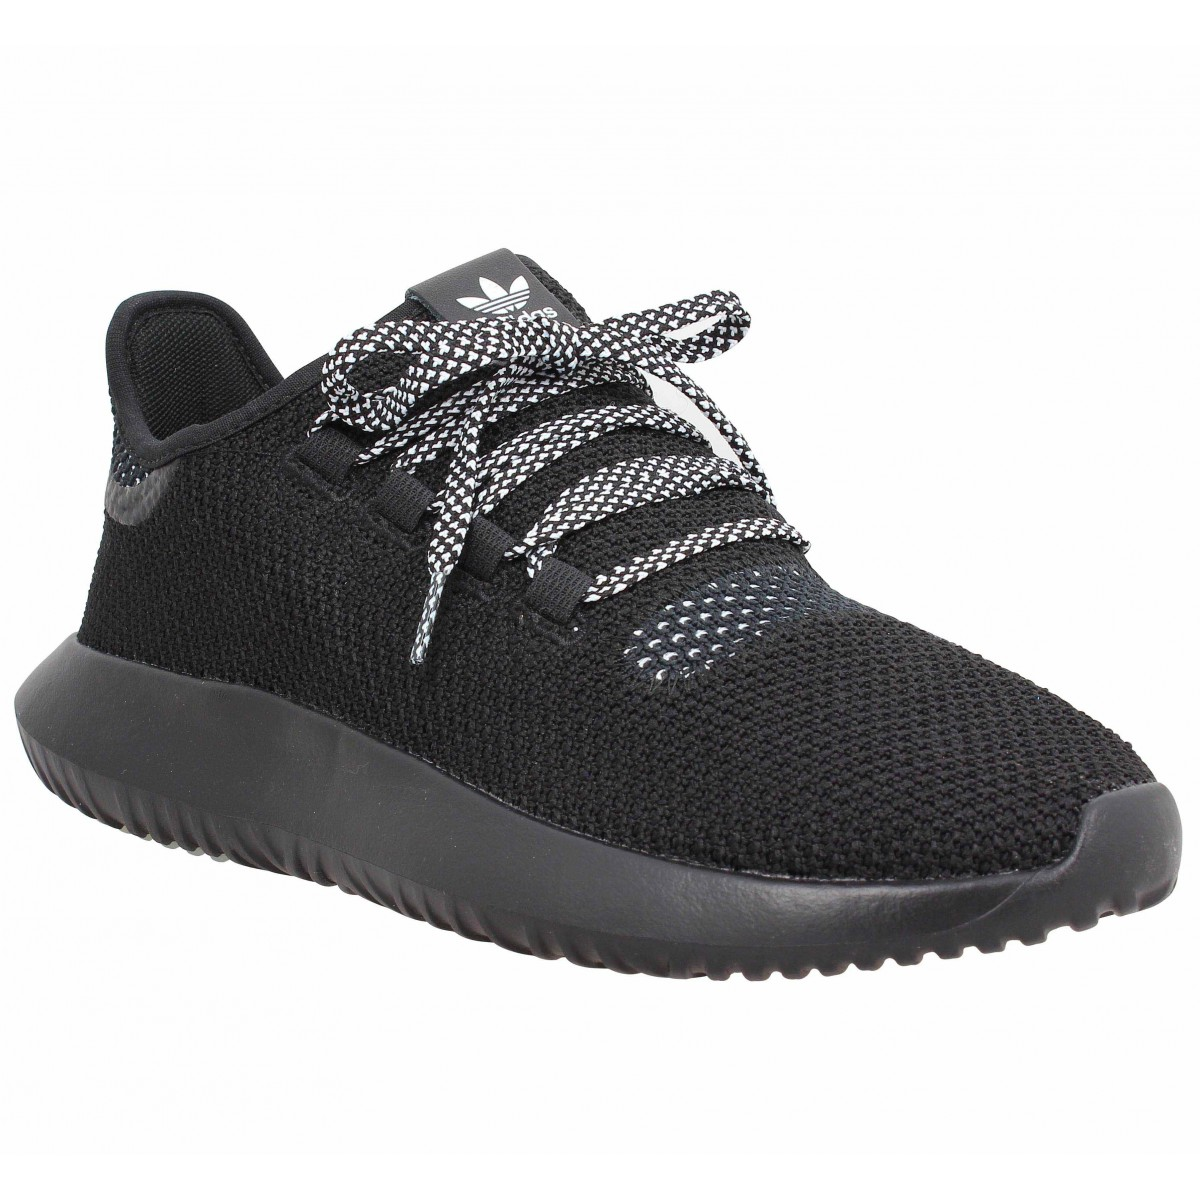 sports shoes 5ebd1 bac11 ... adidas tubular shadow noir Adidas tubular shadow toile homme noir homme    Fanny chaussures